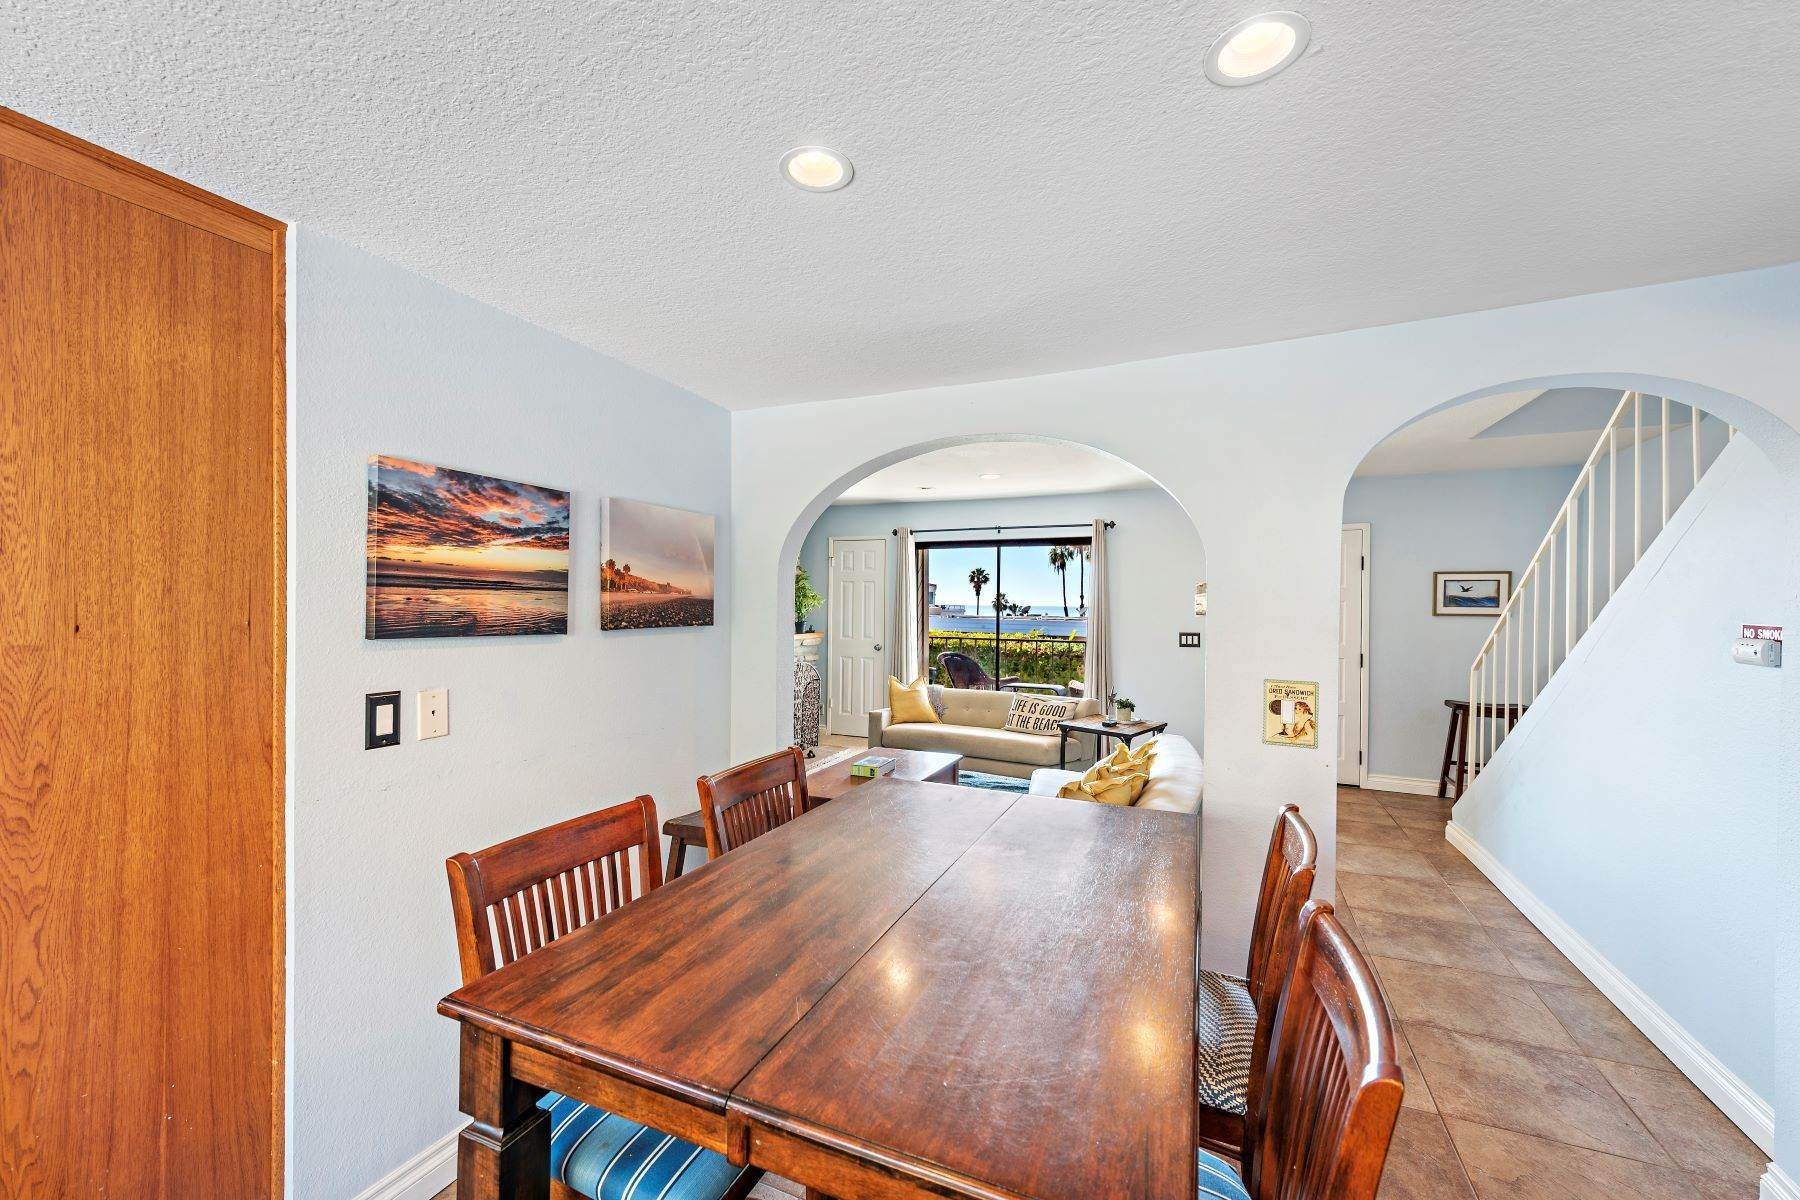 17. Condominiums for Sale at 321 Acebo Lane Unit #C, San Clemente, CA 92672 321 Acebo Lane, Unit #C San Clemente, California 92672 United States